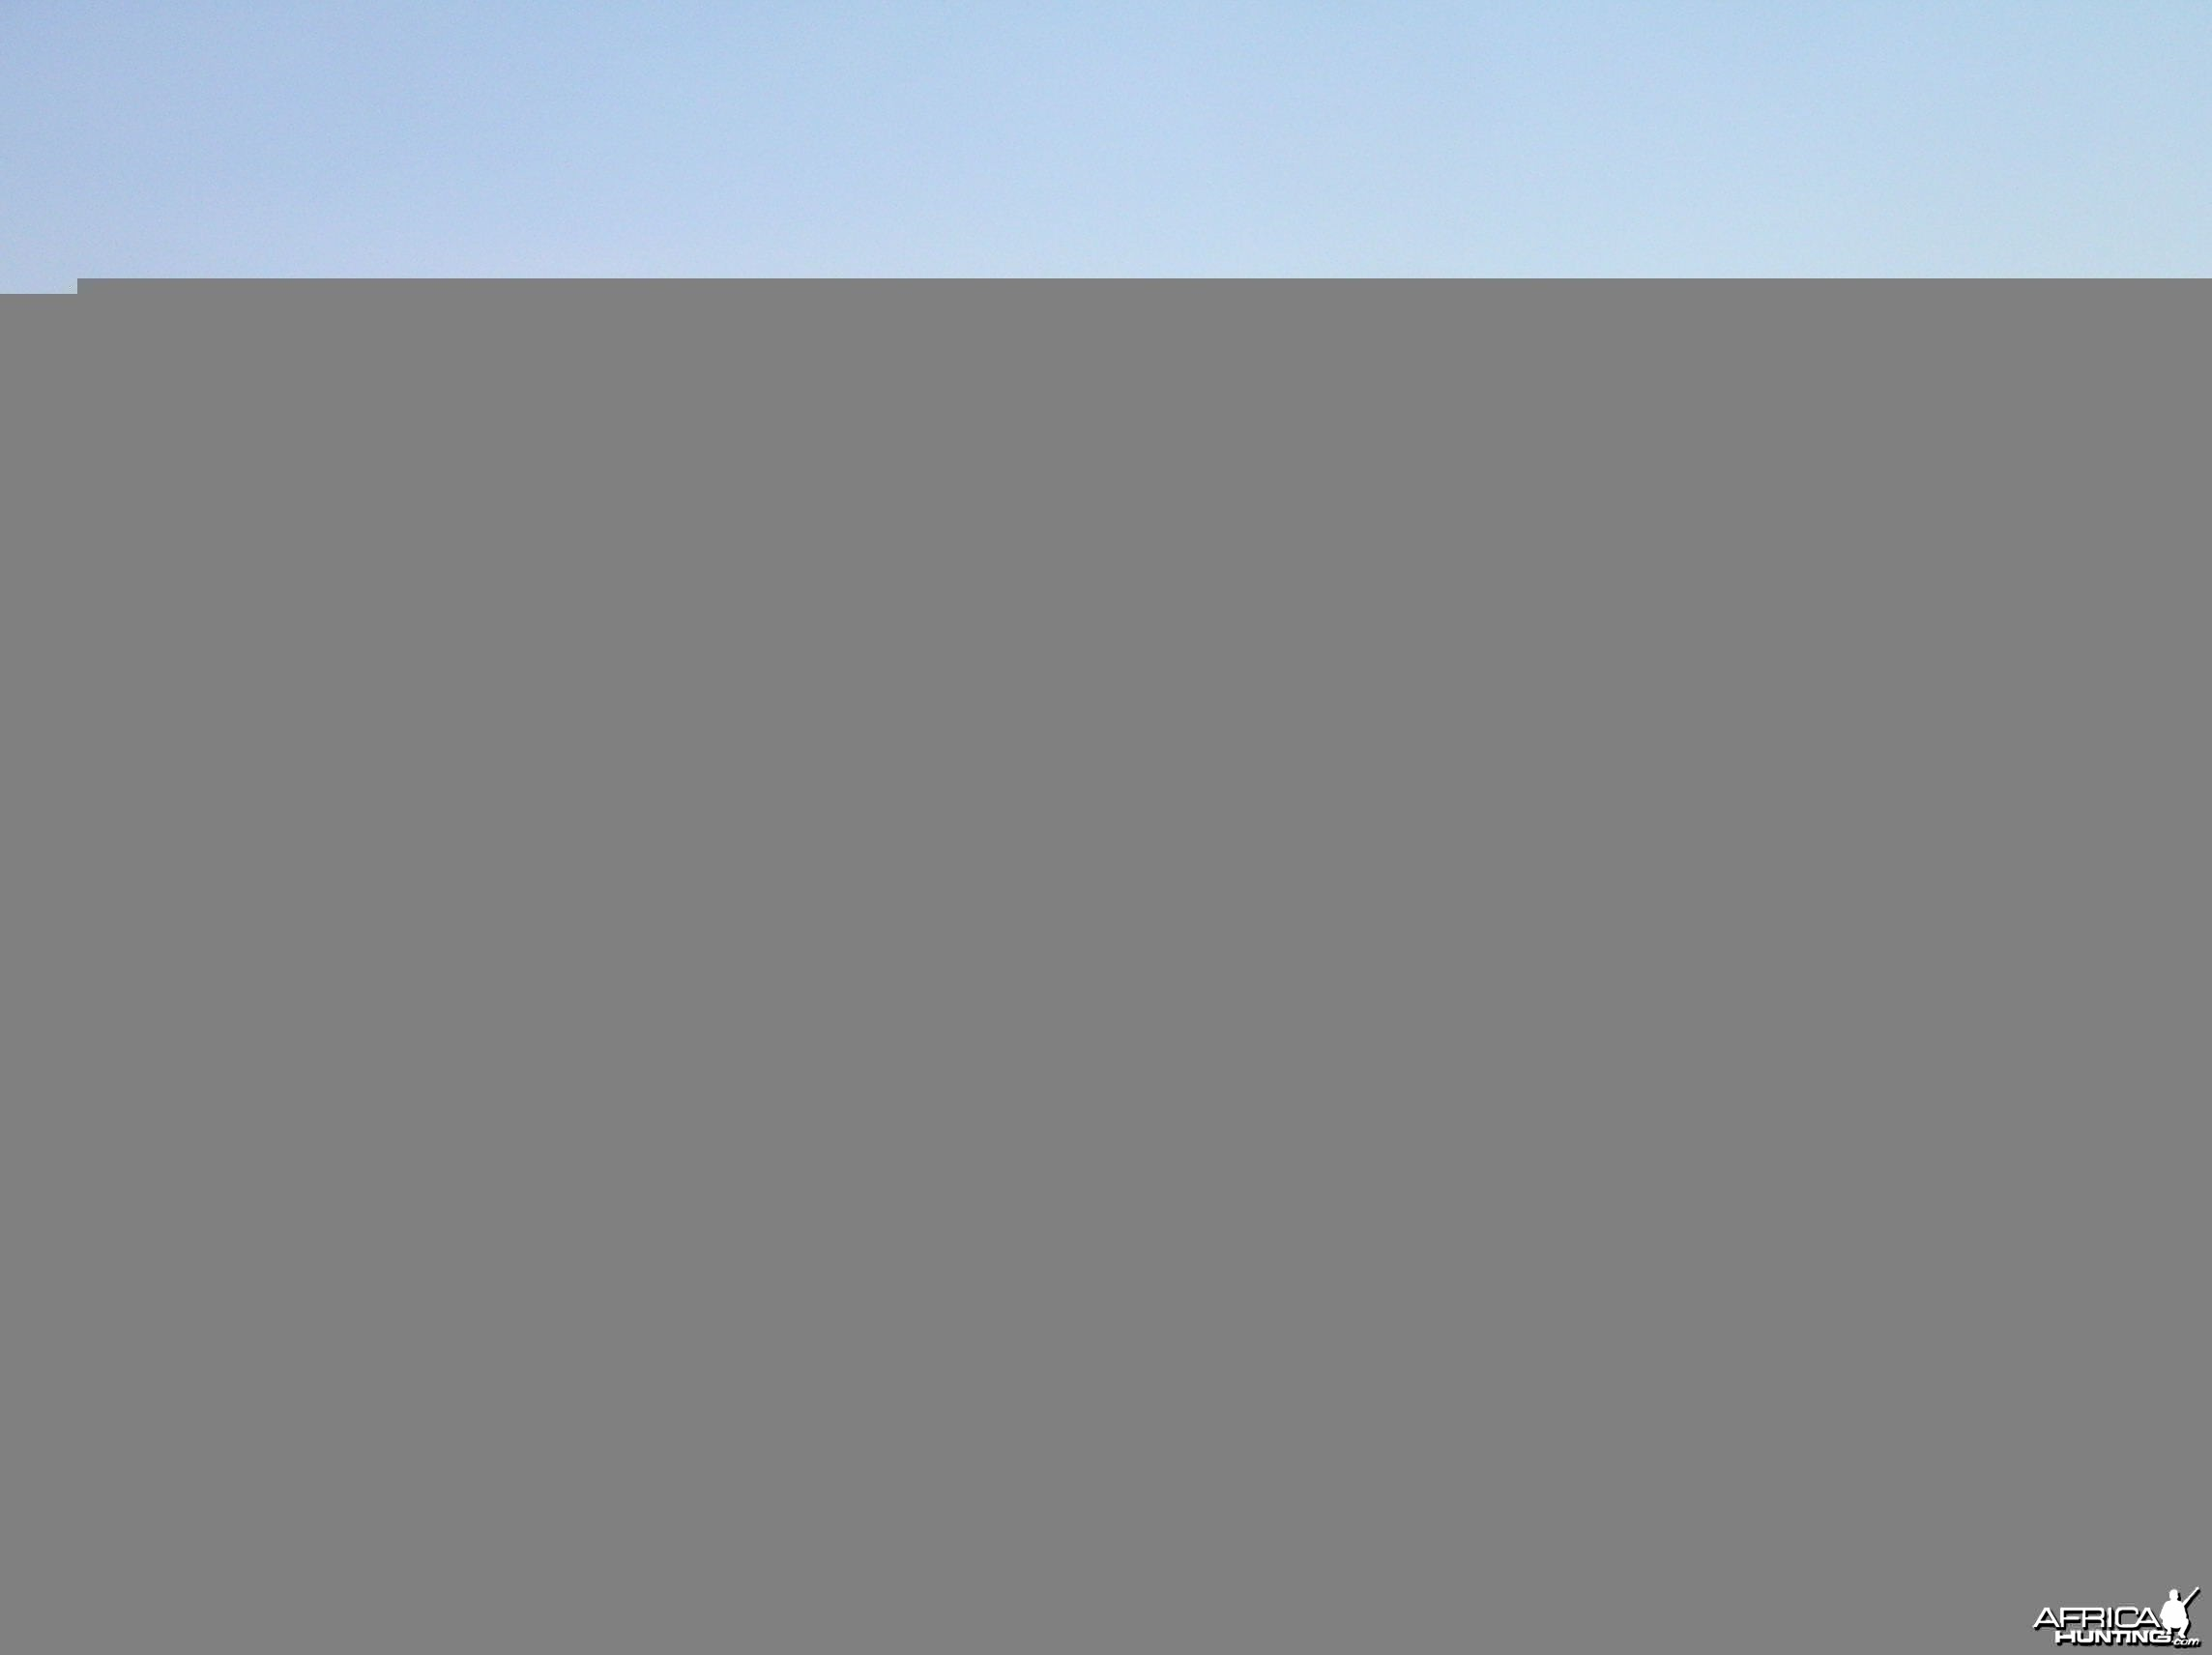 Giraffe Hunting in Namibia